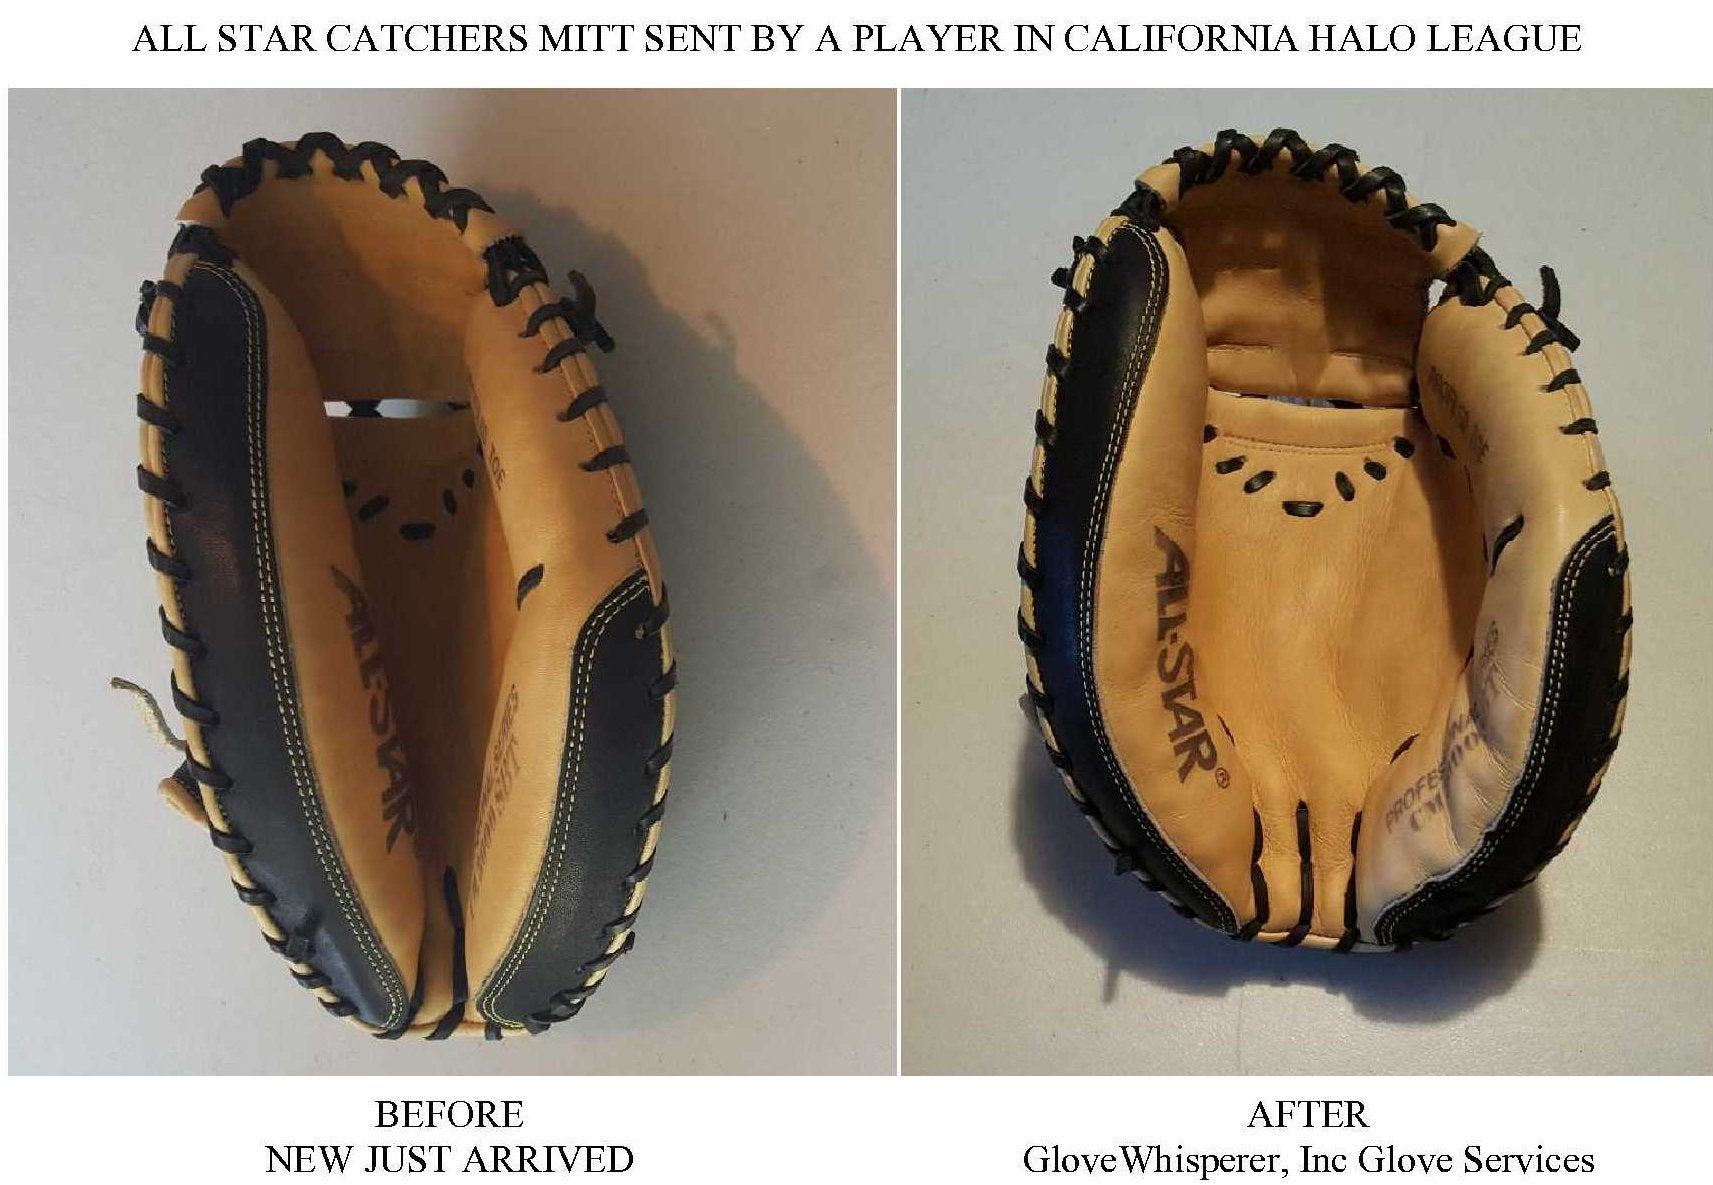 New Catchers Mitt Before and After